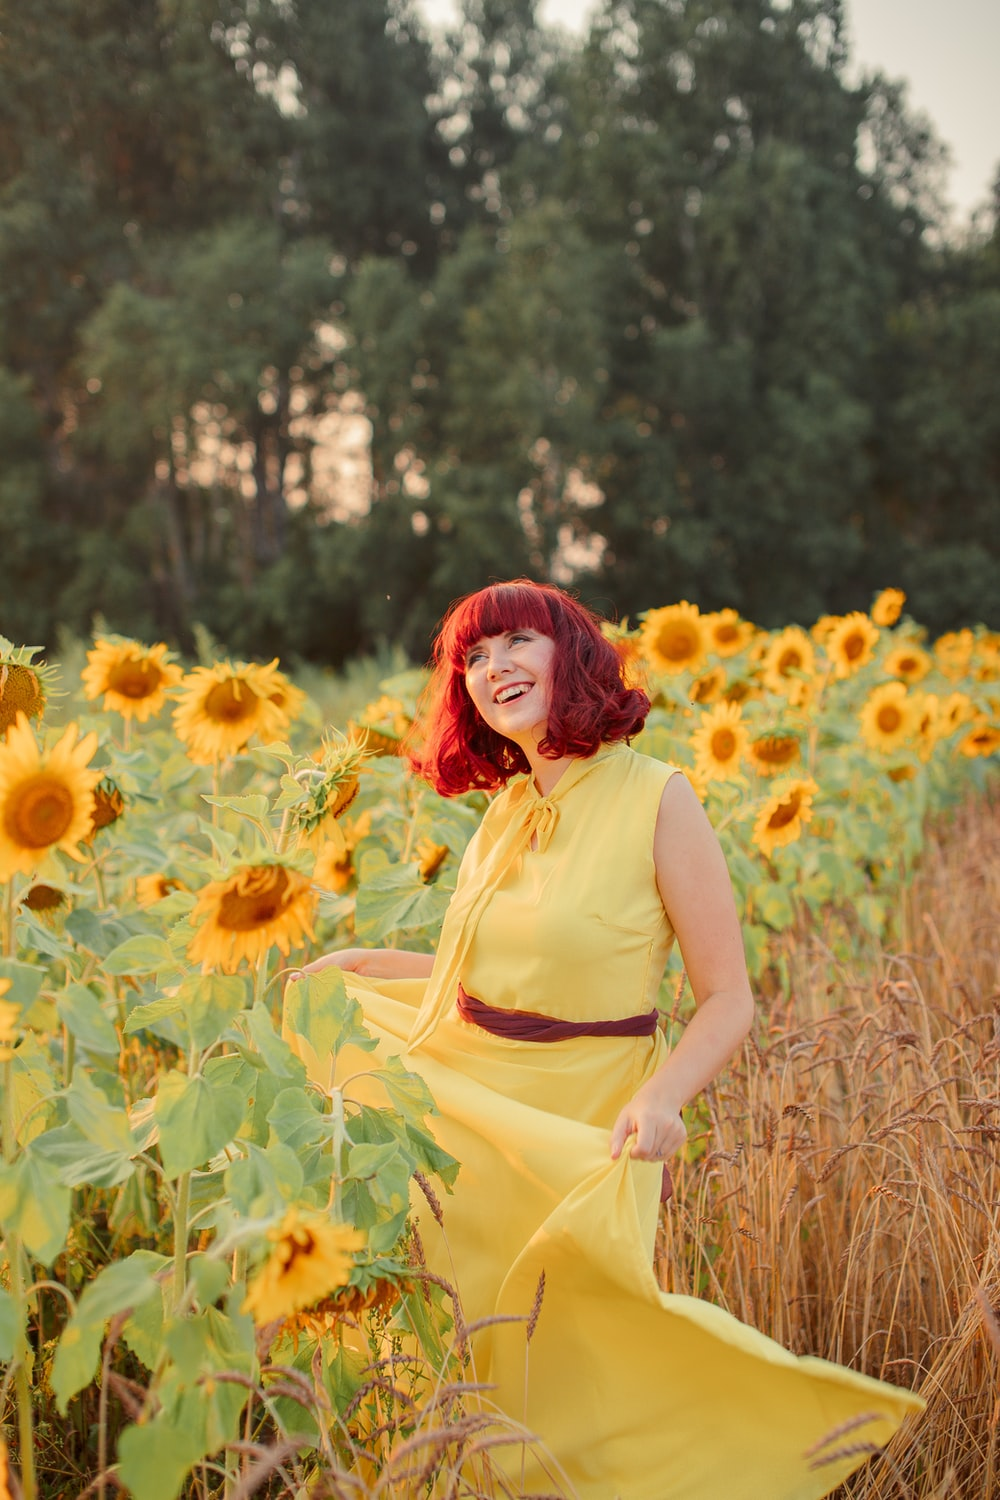 woman in yellow sleeveless dress standing on sunflower field during daytime